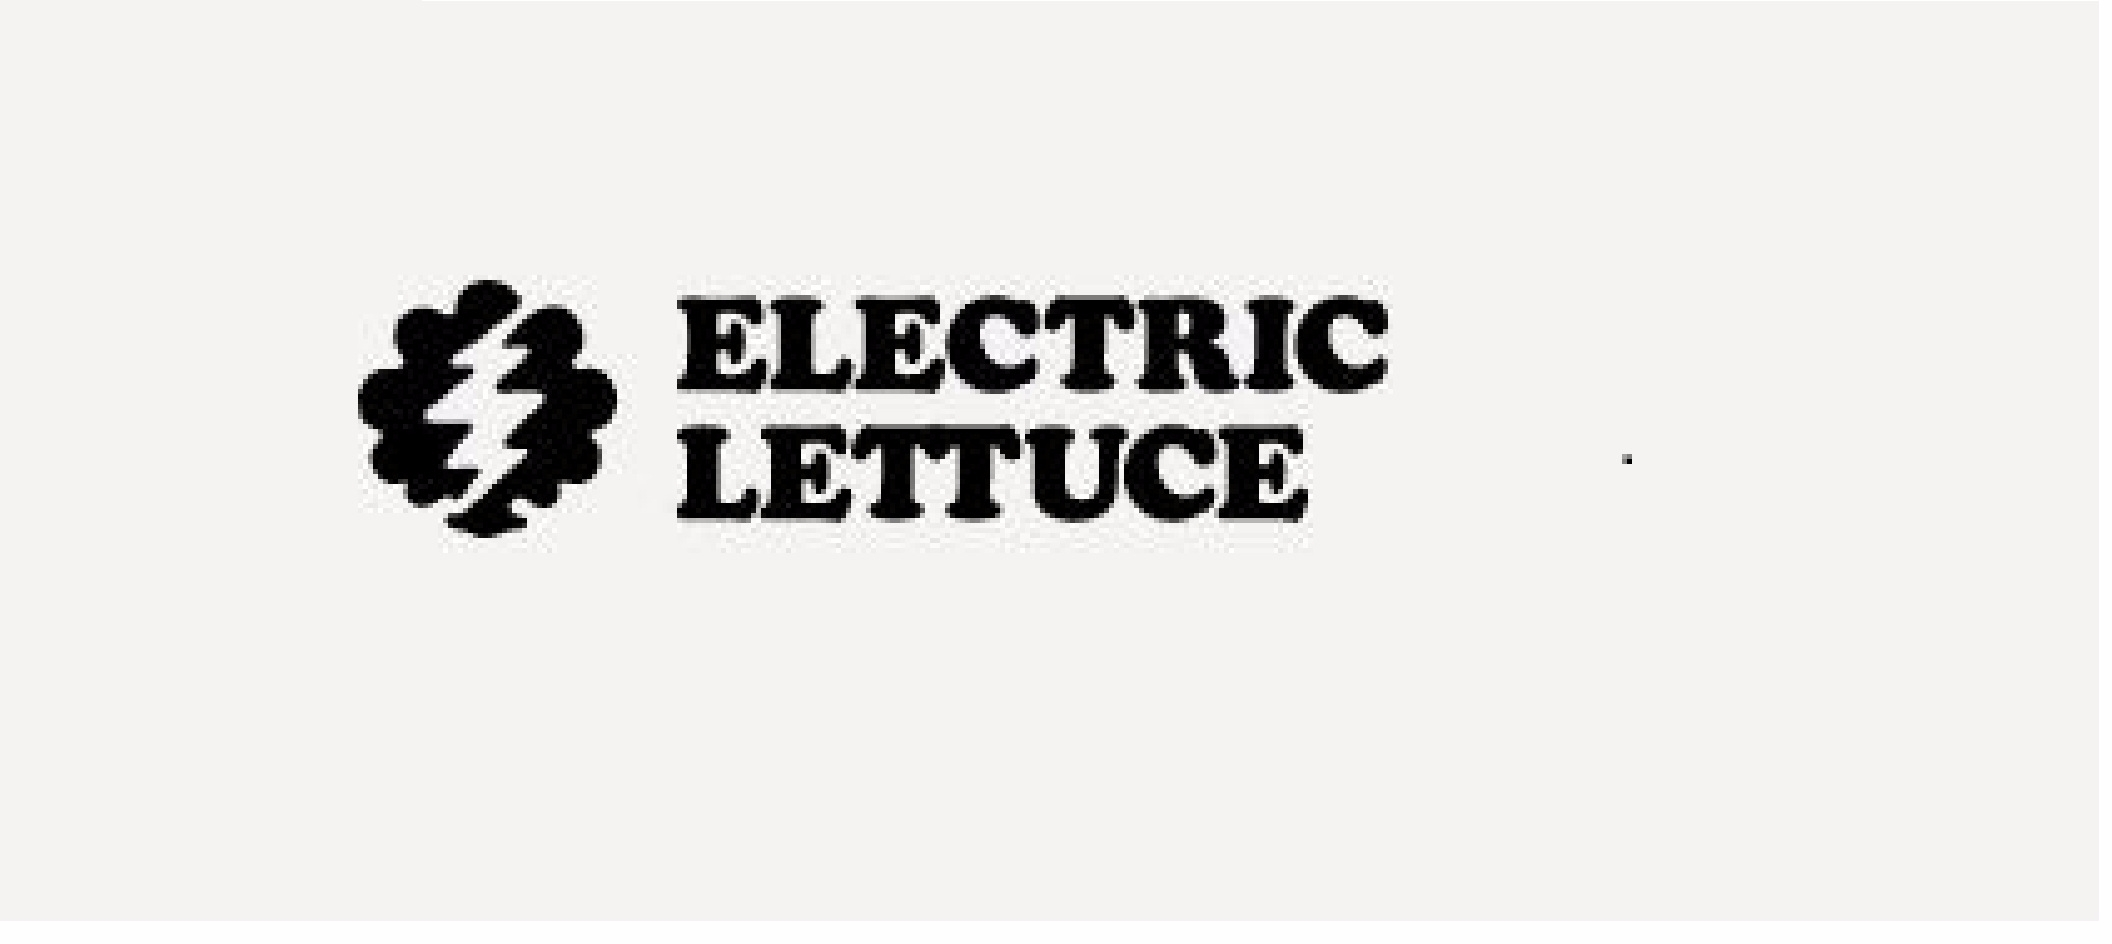 Electric Lettuce SouthWest Dispensary (@electriclettuceor) Cover Image